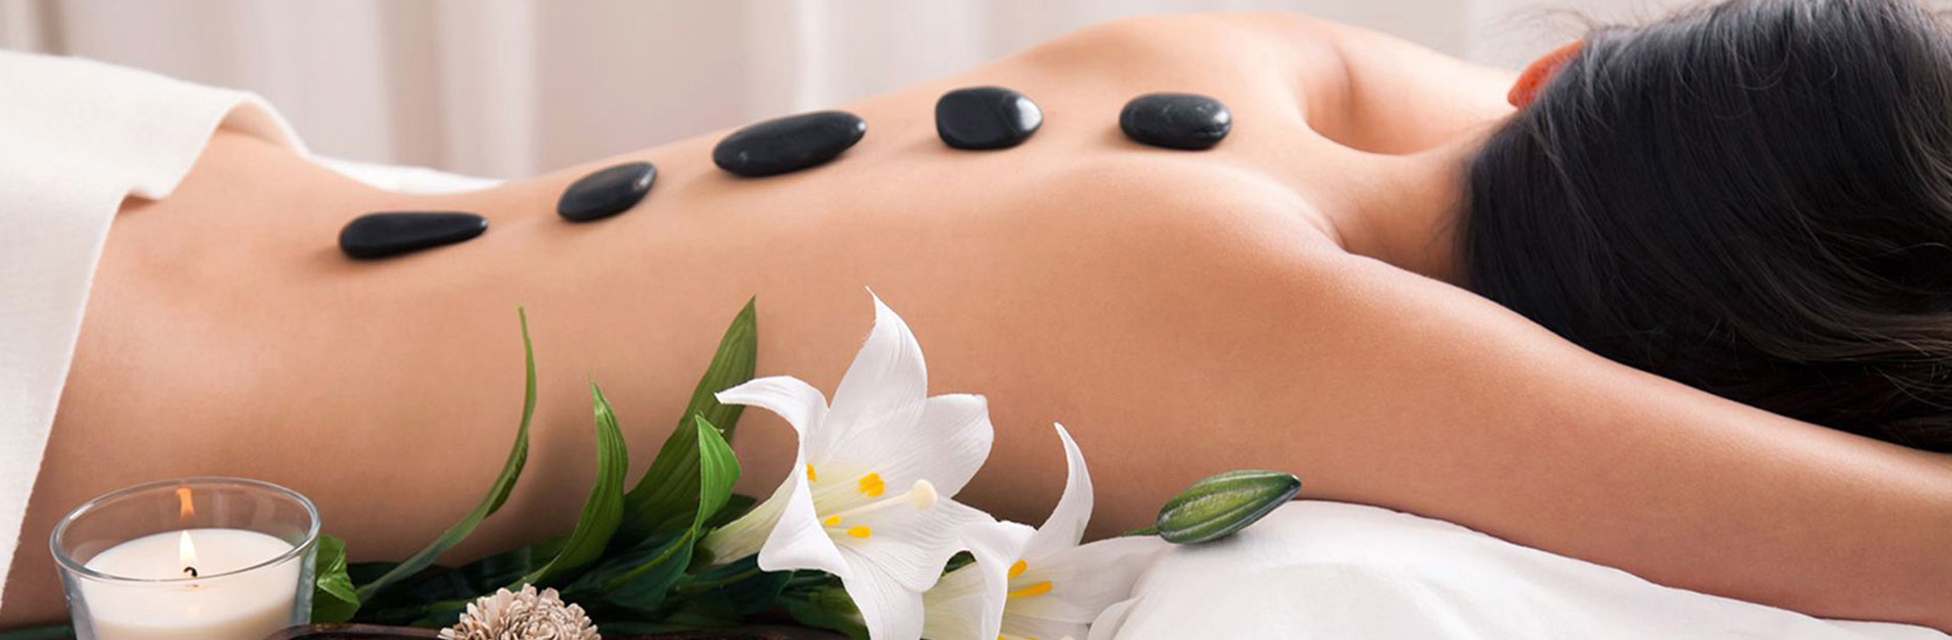 grand thai massage sydney